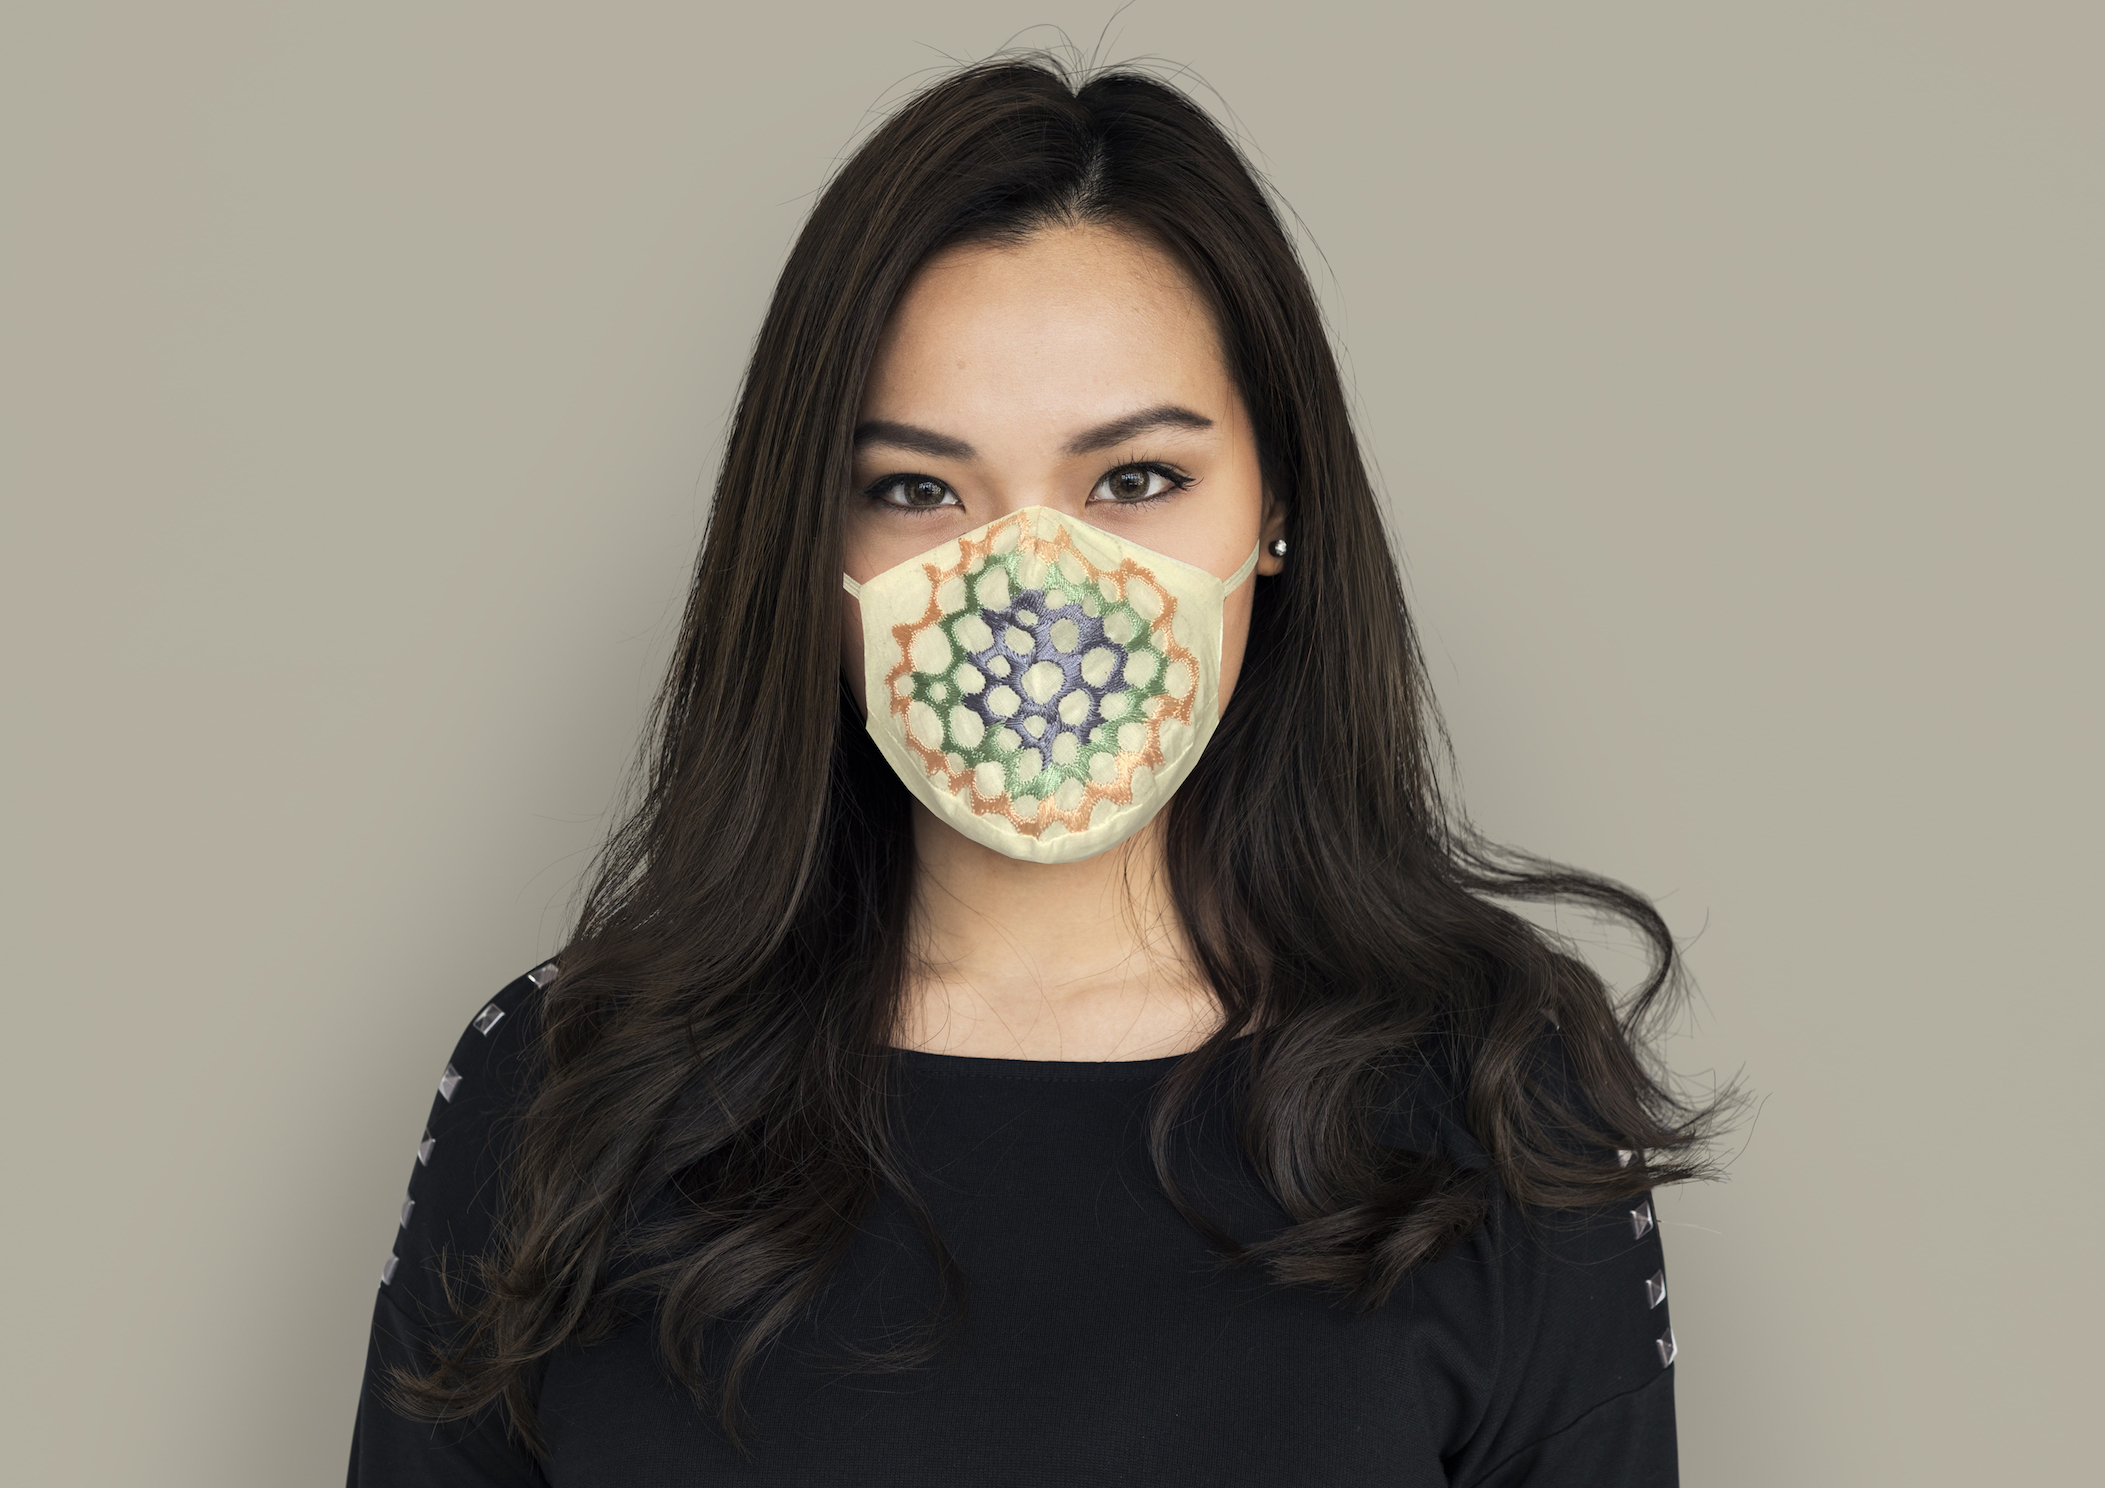 Biodegradable mask by Anurav